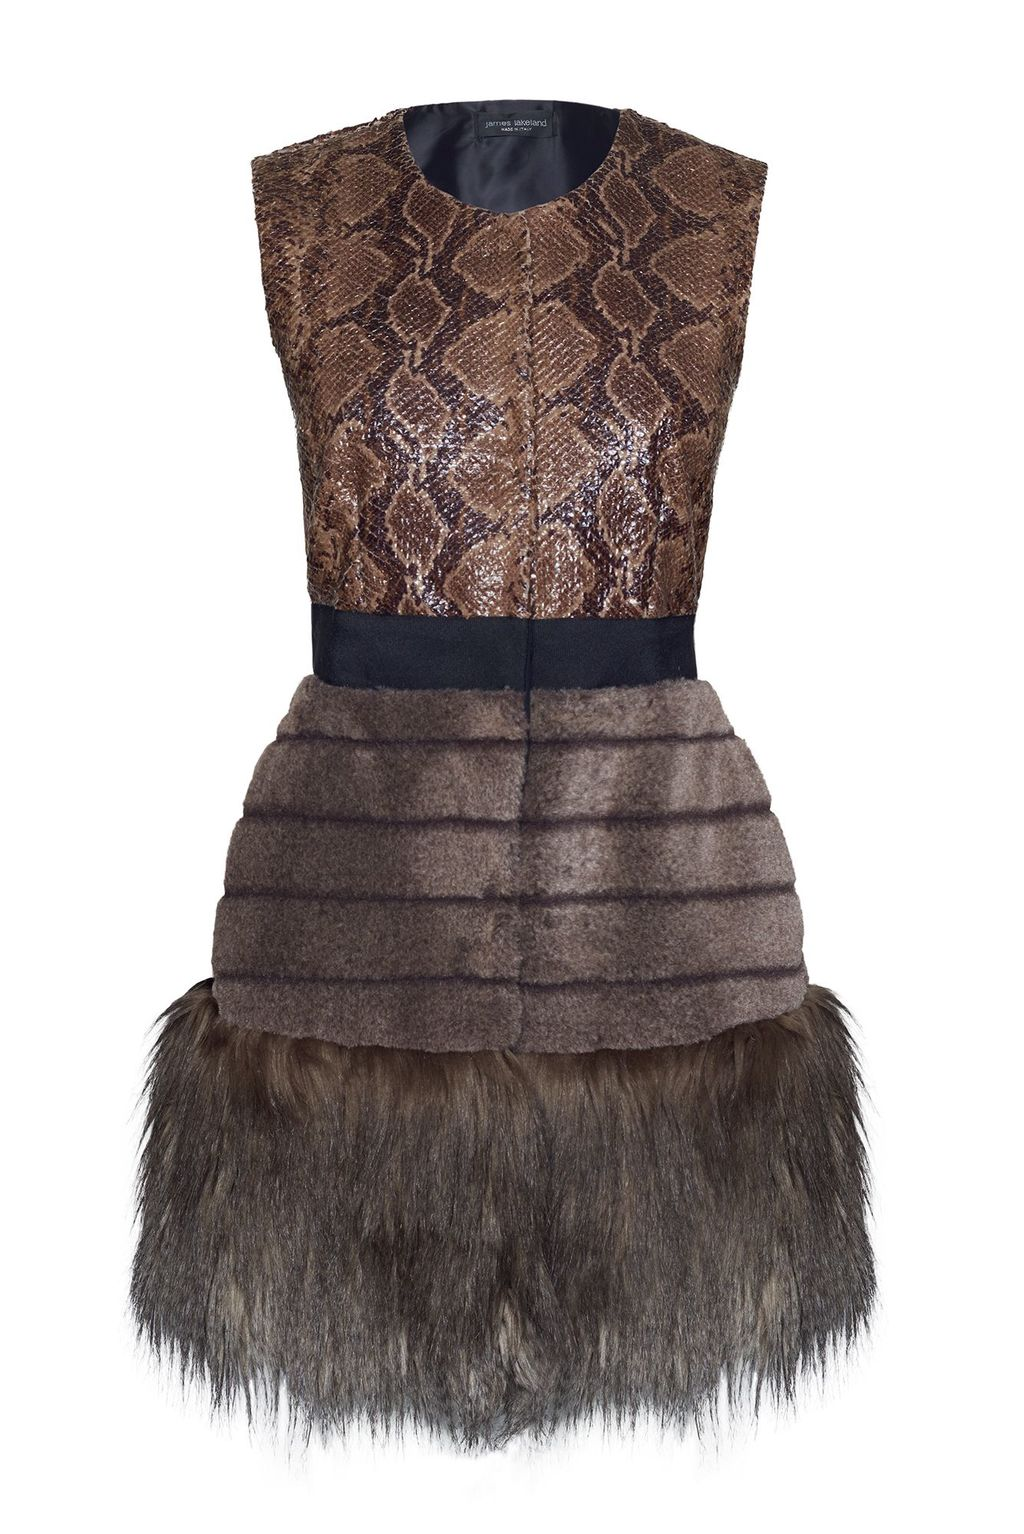 Faux Fur Gilet, Black Multi - sleeve style: sleeveless; style: gilet; collar: round collar/collarless; predominant colour: chocolate brown; secondary colour: tan; occasions: evening; fit: tailored/fitted; fibres: polyester/polyamide - mix; length: mid thigh; sleeve length: sleeveless; texture group: fur; collar break: high; pattern type: fabric; pattern size: light/subtle; pattern: patterned/print; embellishment: fur; season: a/w 2015; wardrobe: event; embellishment location: hip